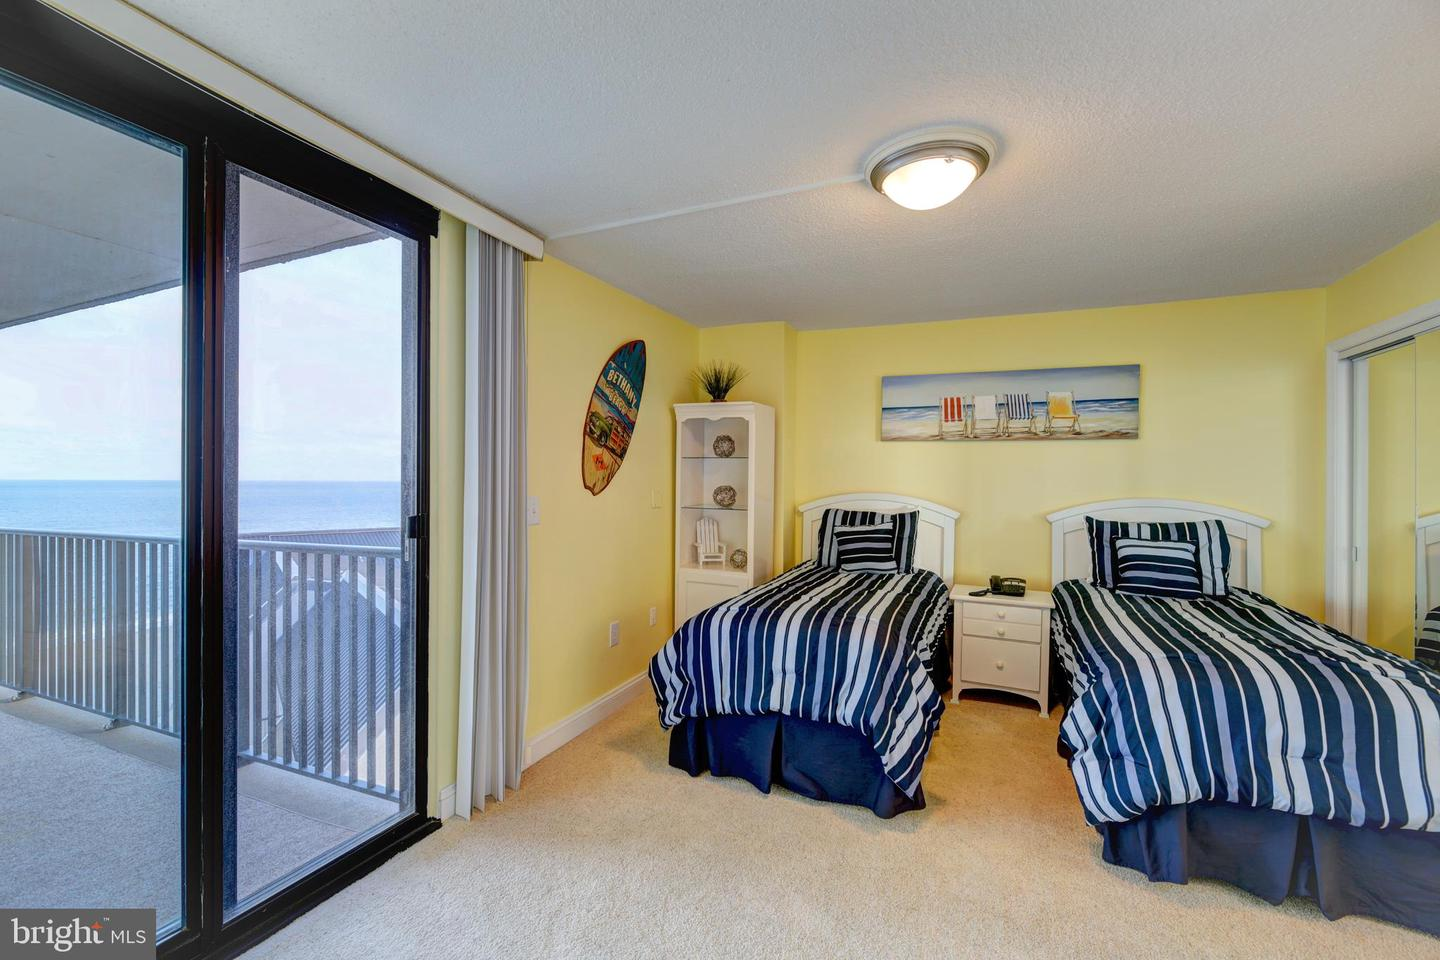 DESU152792-302186529392-2019-12-16-14-23-16 1206 S Edgewater House Rd #1206s | Bethany Beach, De Real Estate For Sale | MLS# Desu152792  - Suzanne Macnab